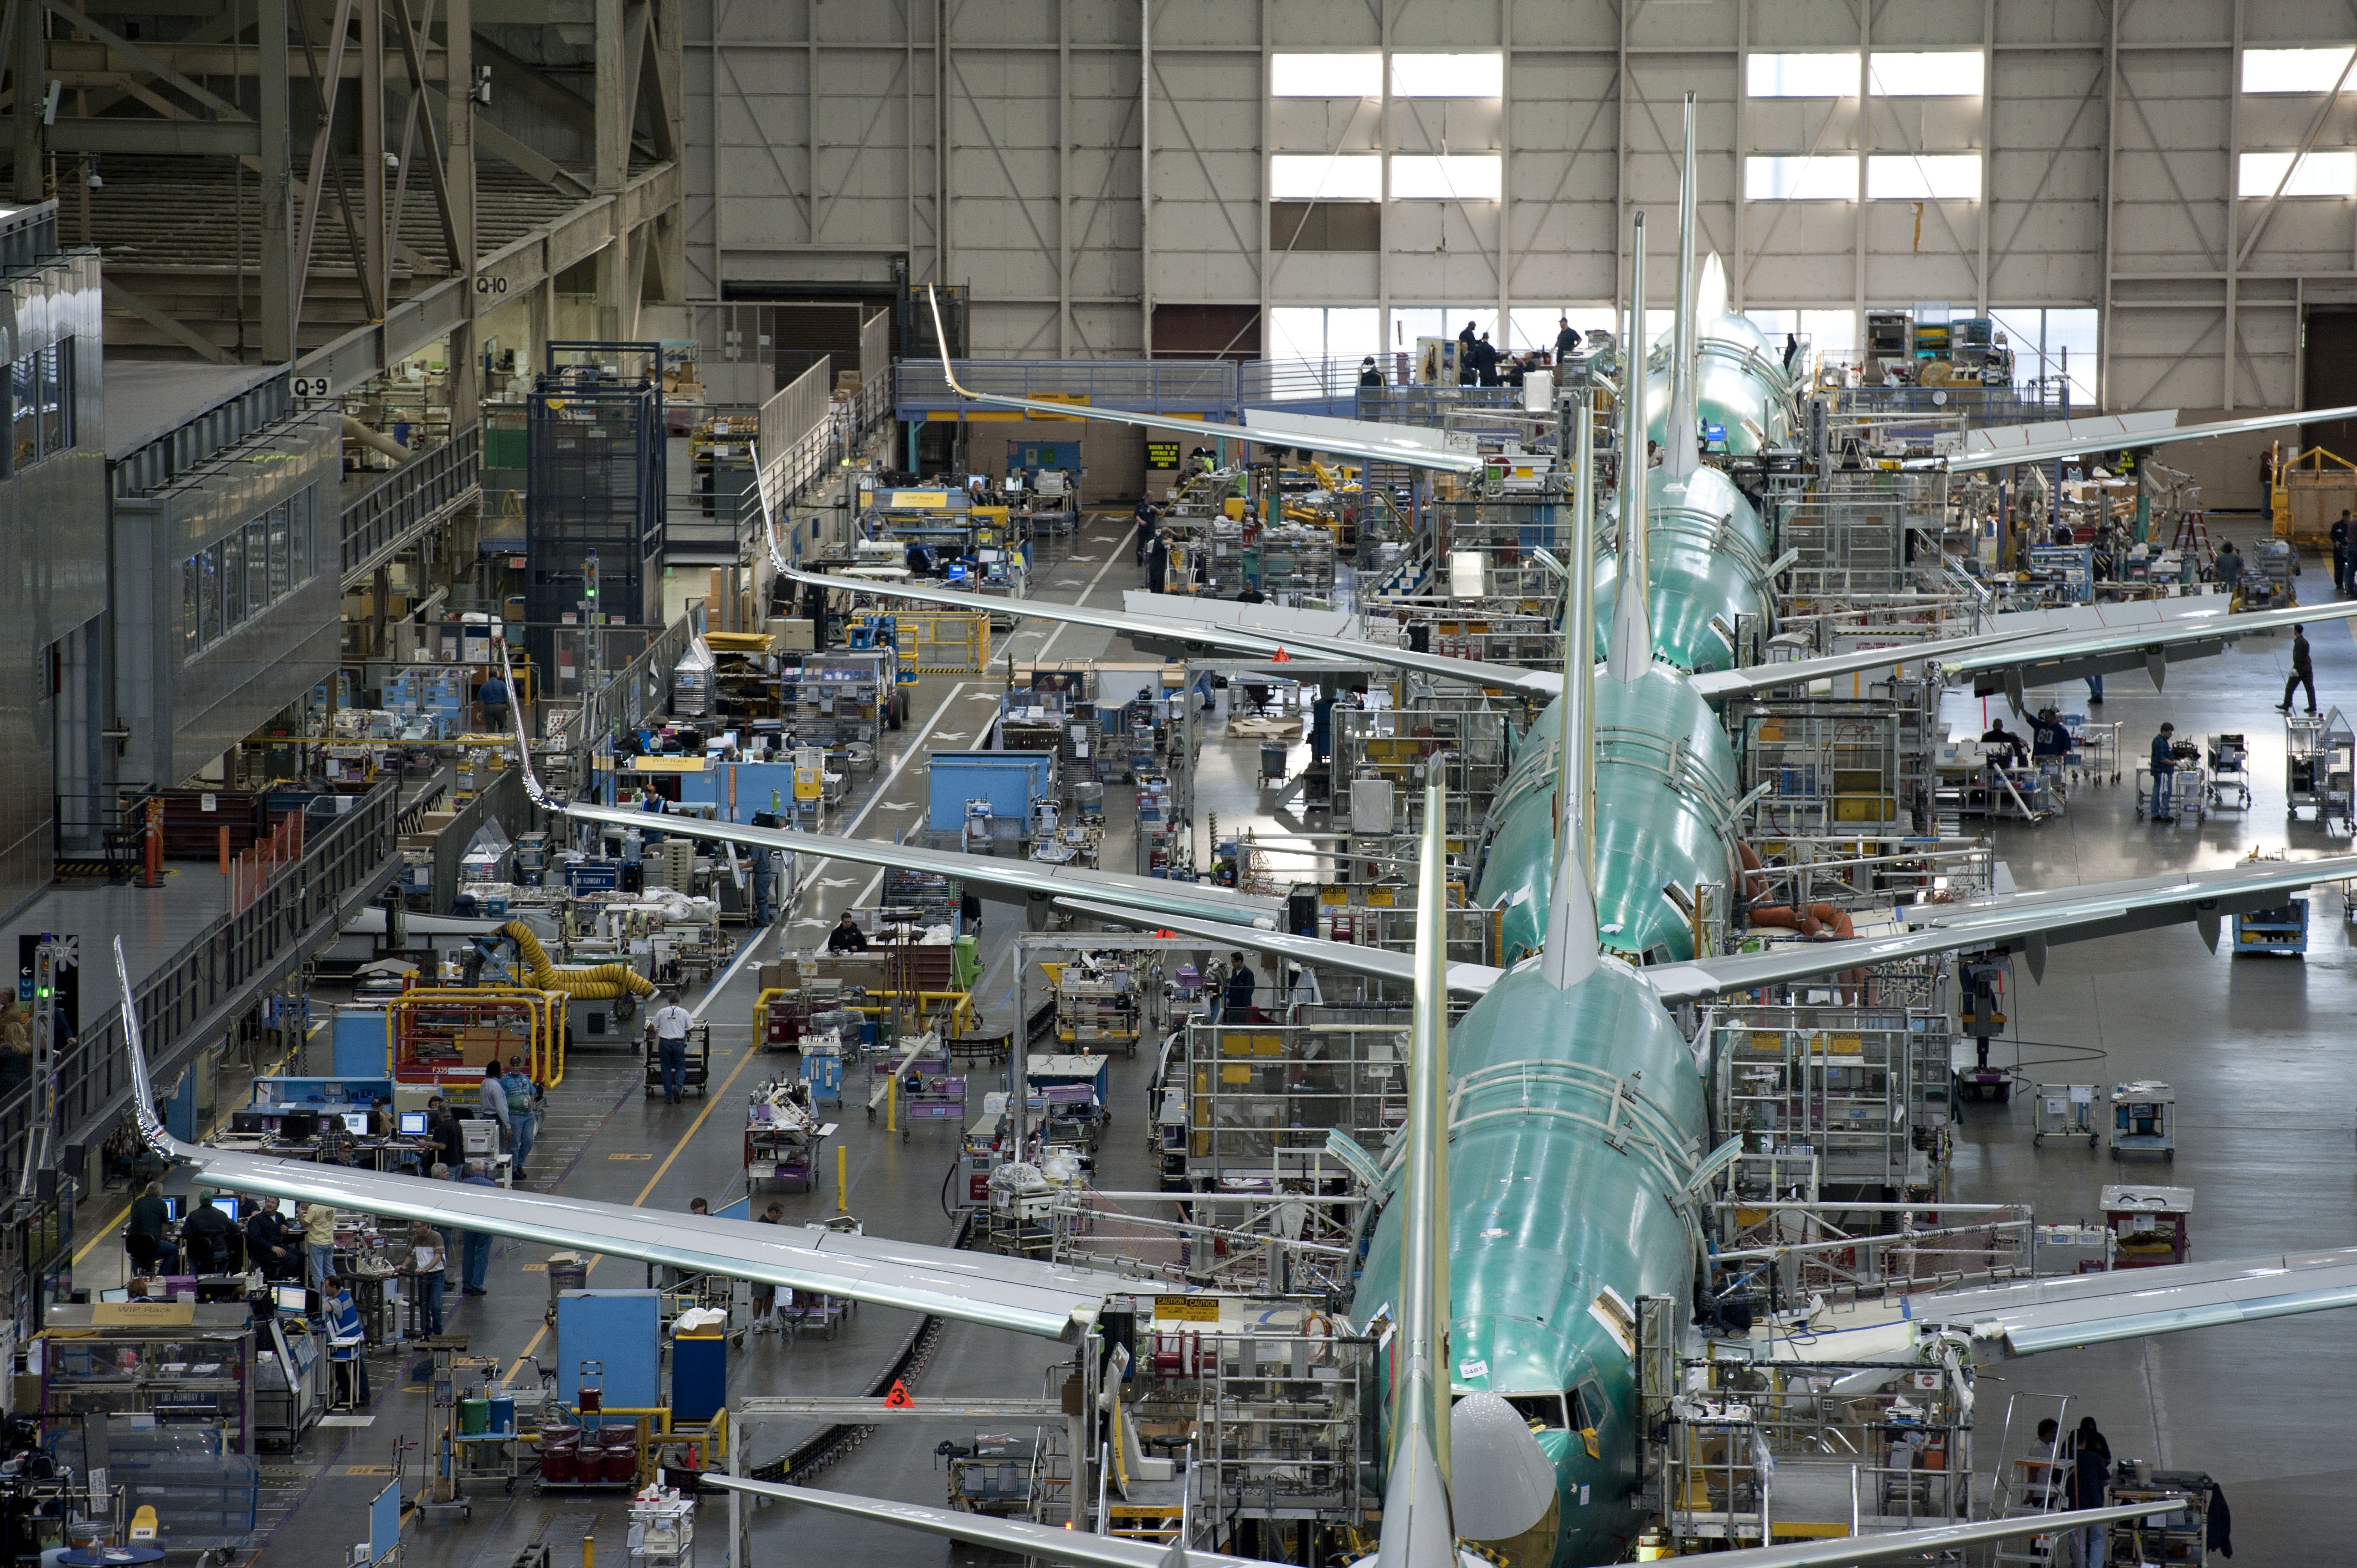 Boeing To Cut Workforce, Reduce Production